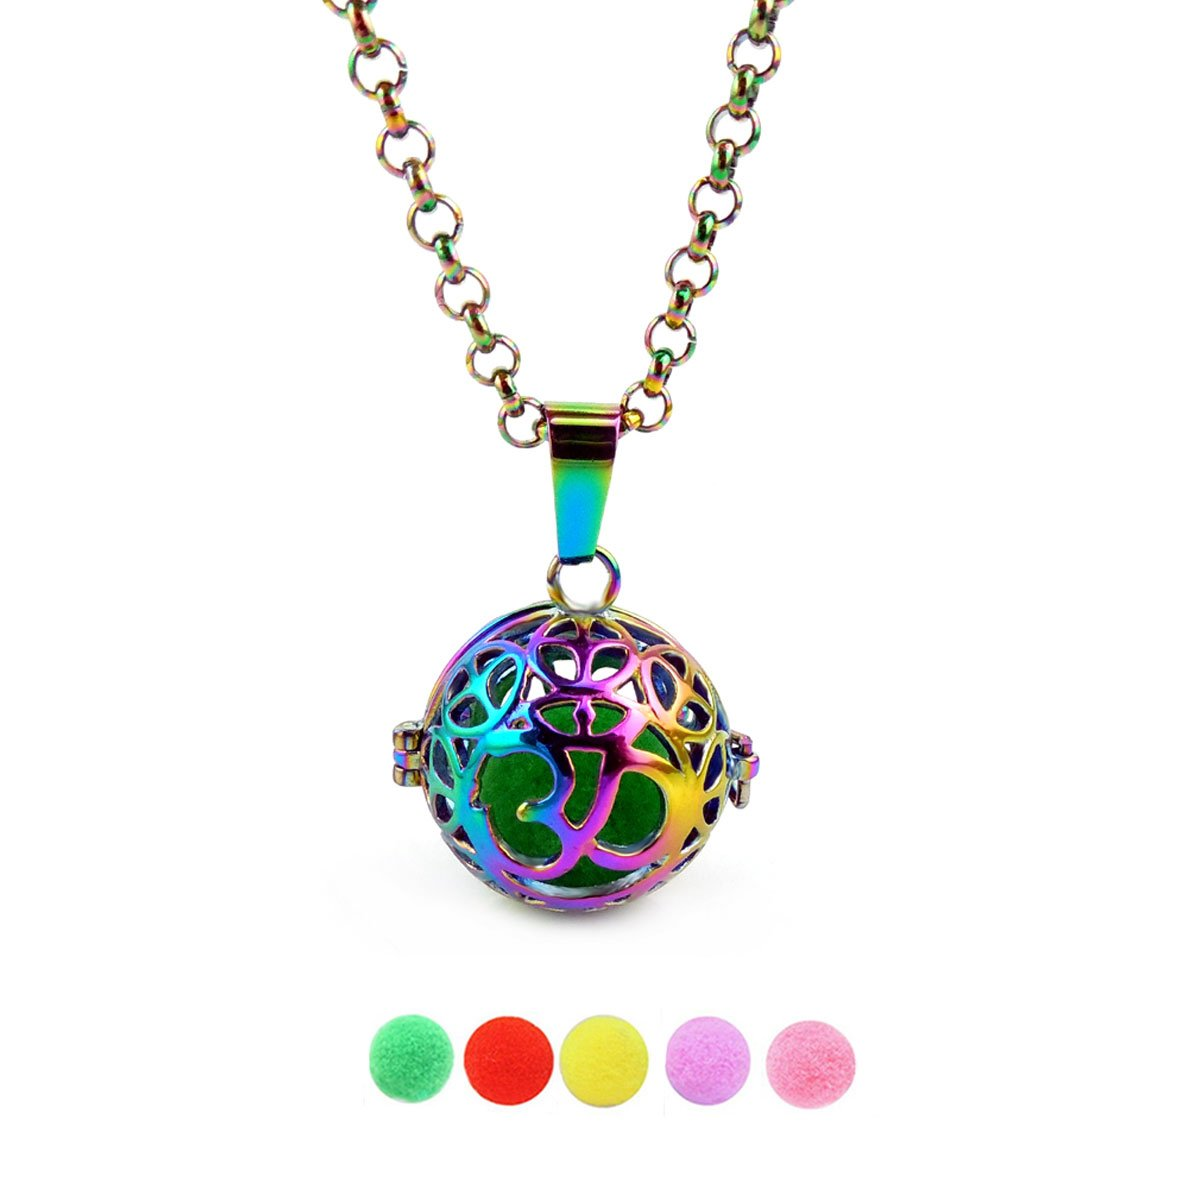 Rainbow Aromatherapy Essential Oils Cage Necklace Om Ohm Aum Yoga Pendant Mantra Pearl Glass Crystal Bead Cage Holder